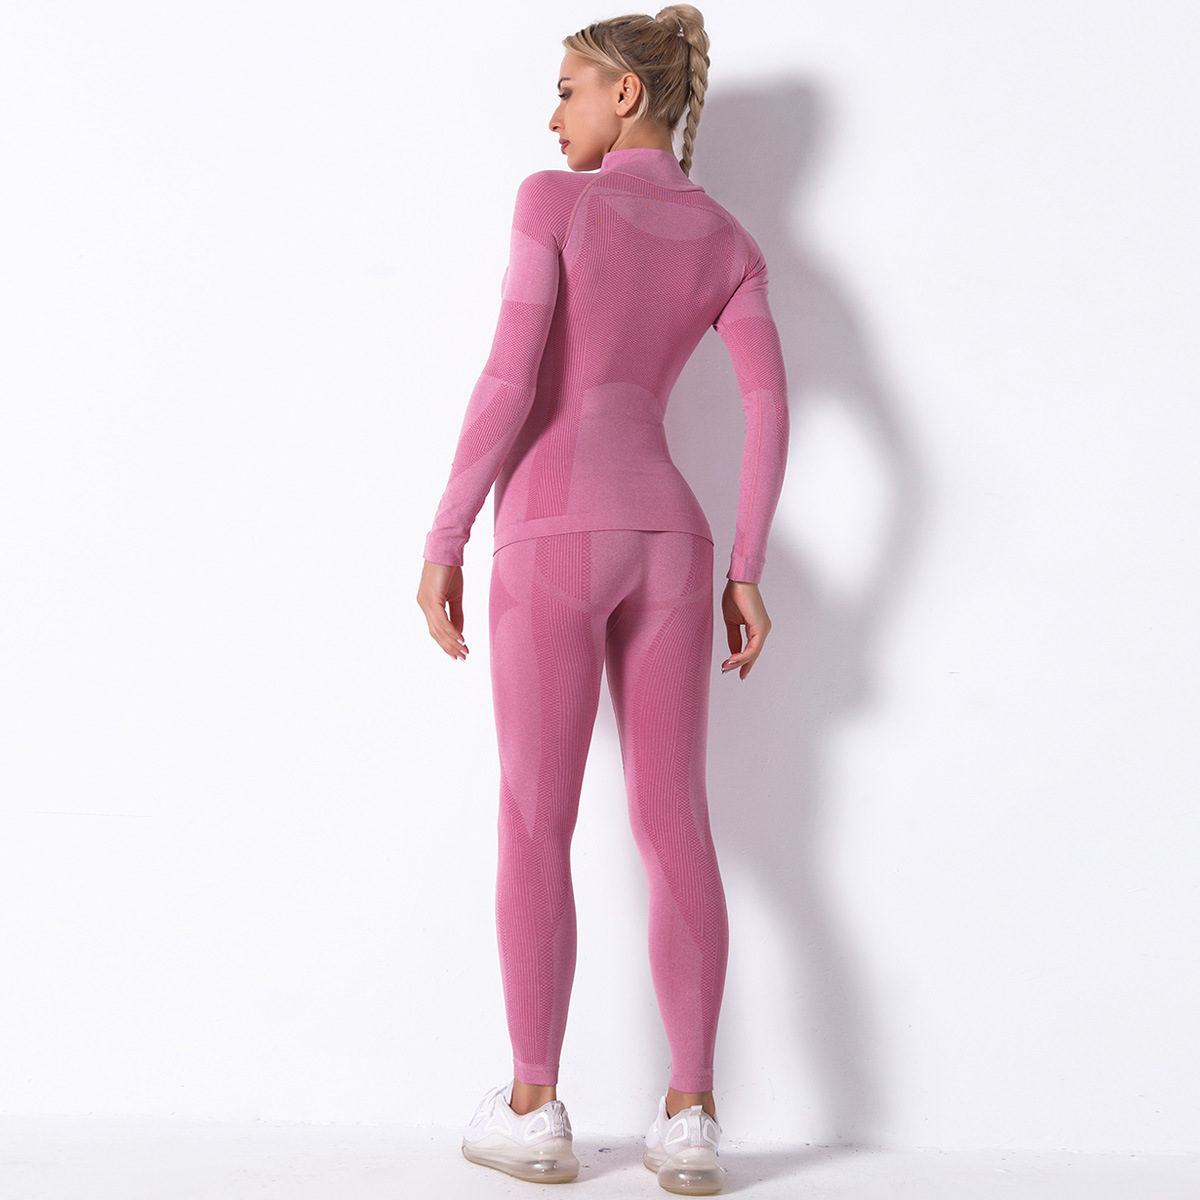 seamless knitted striped sports yoga long-sleeved two-piece suit  NSLX9020